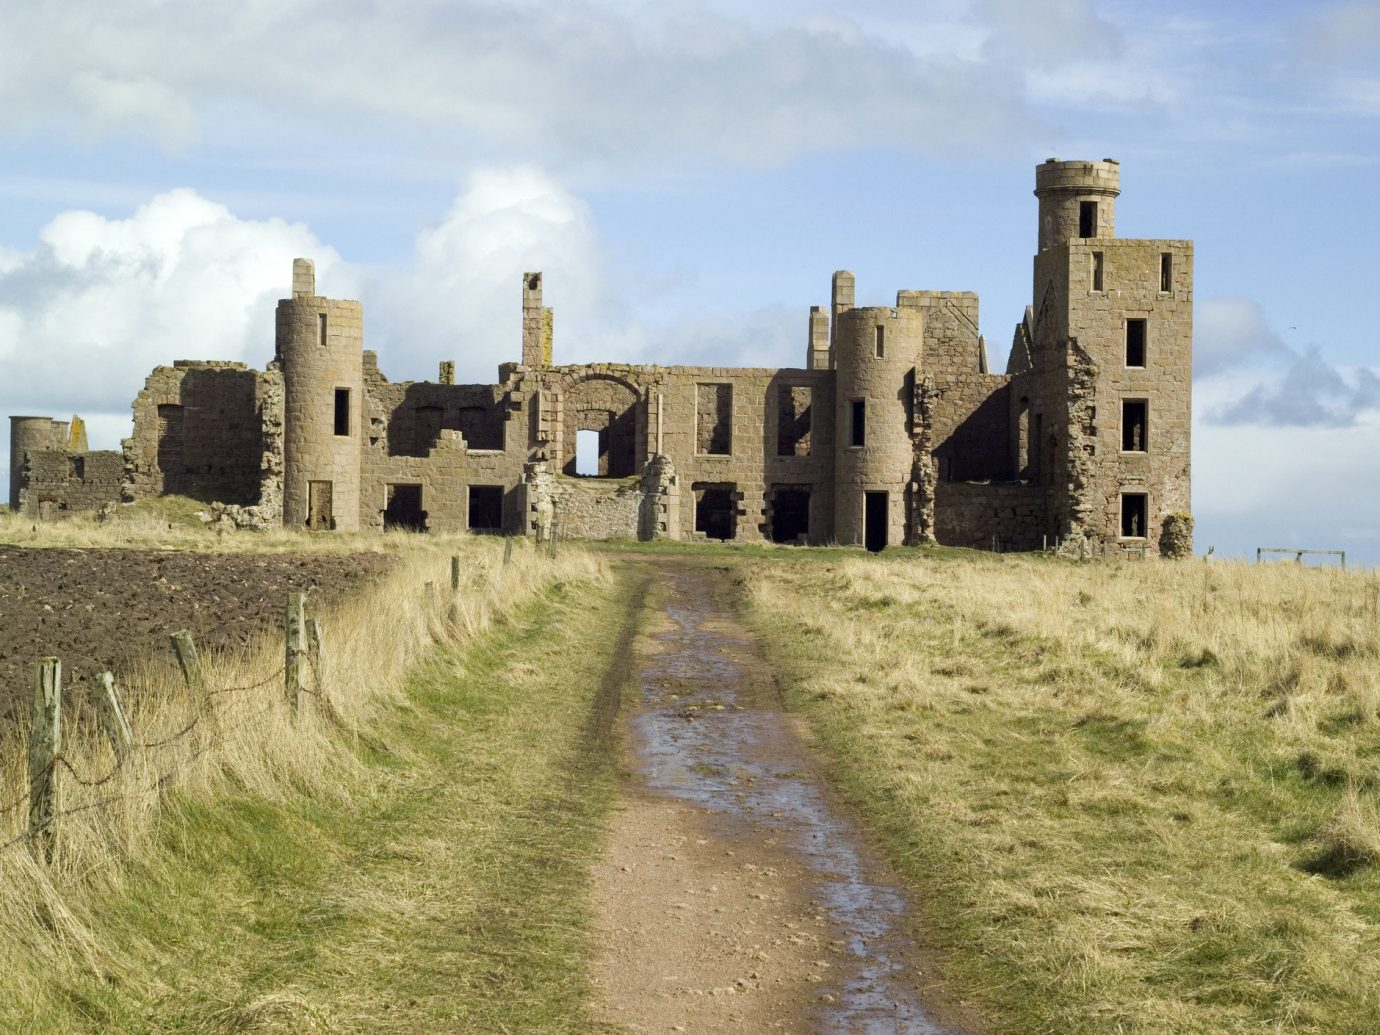 Arts + Culture Offbeat grass sky outdoor building castle medieval architecture Ruins historic site history Village fortification estate château ancient history stone dirt